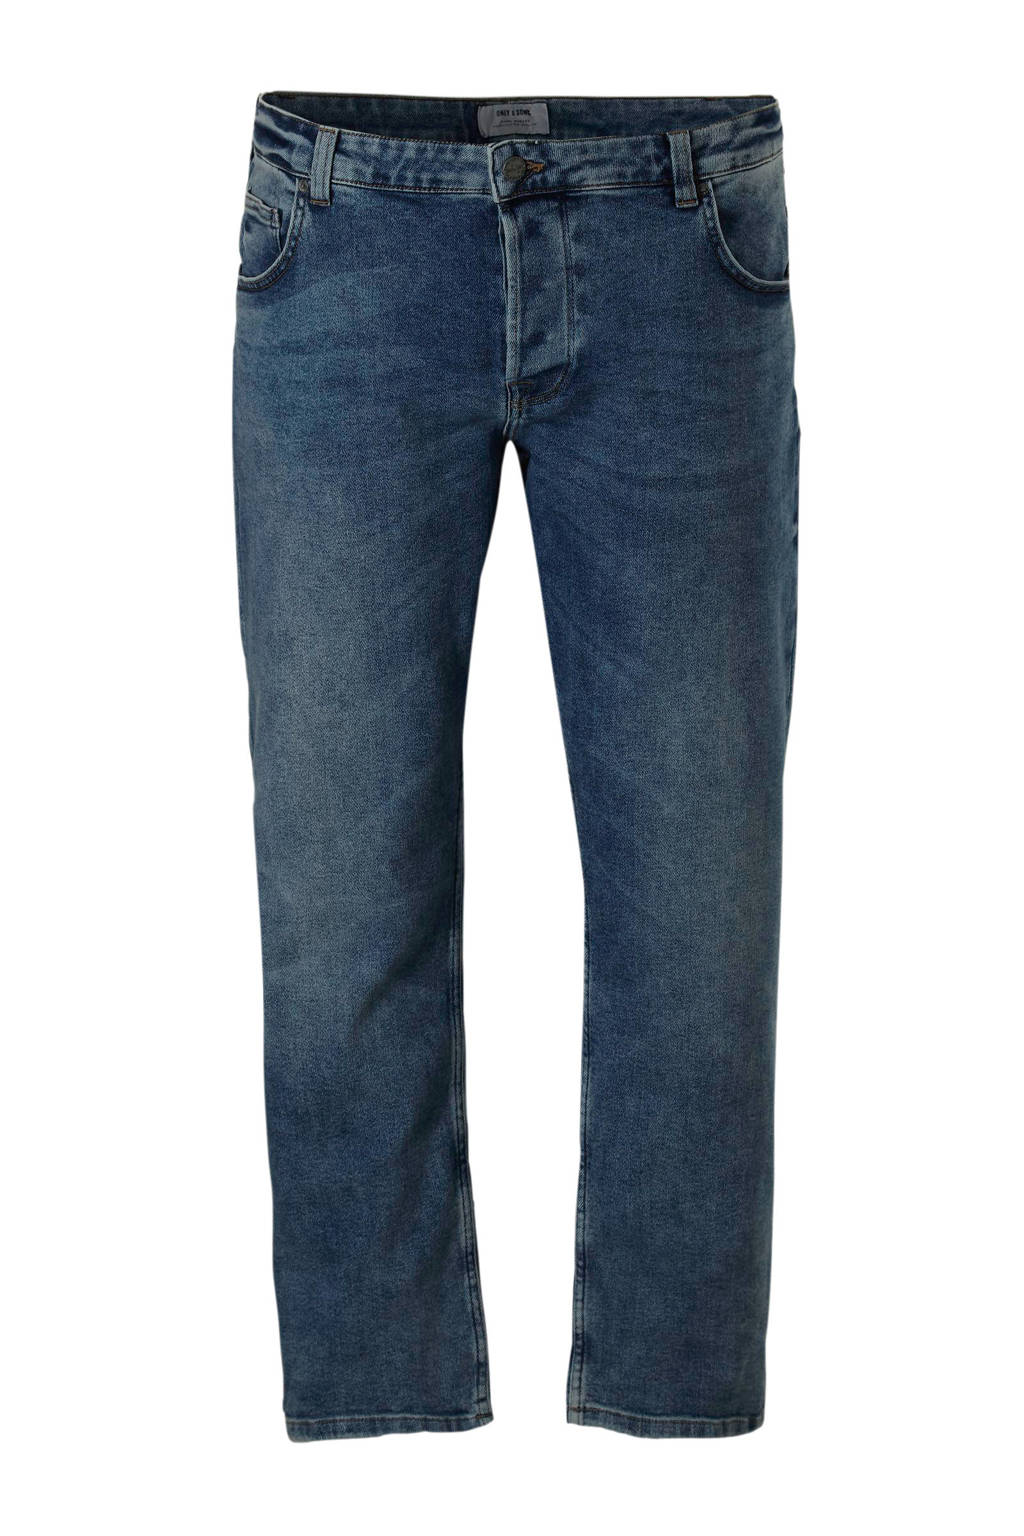 Only & Sons PLUS  slim slim fit jeans, Light denim